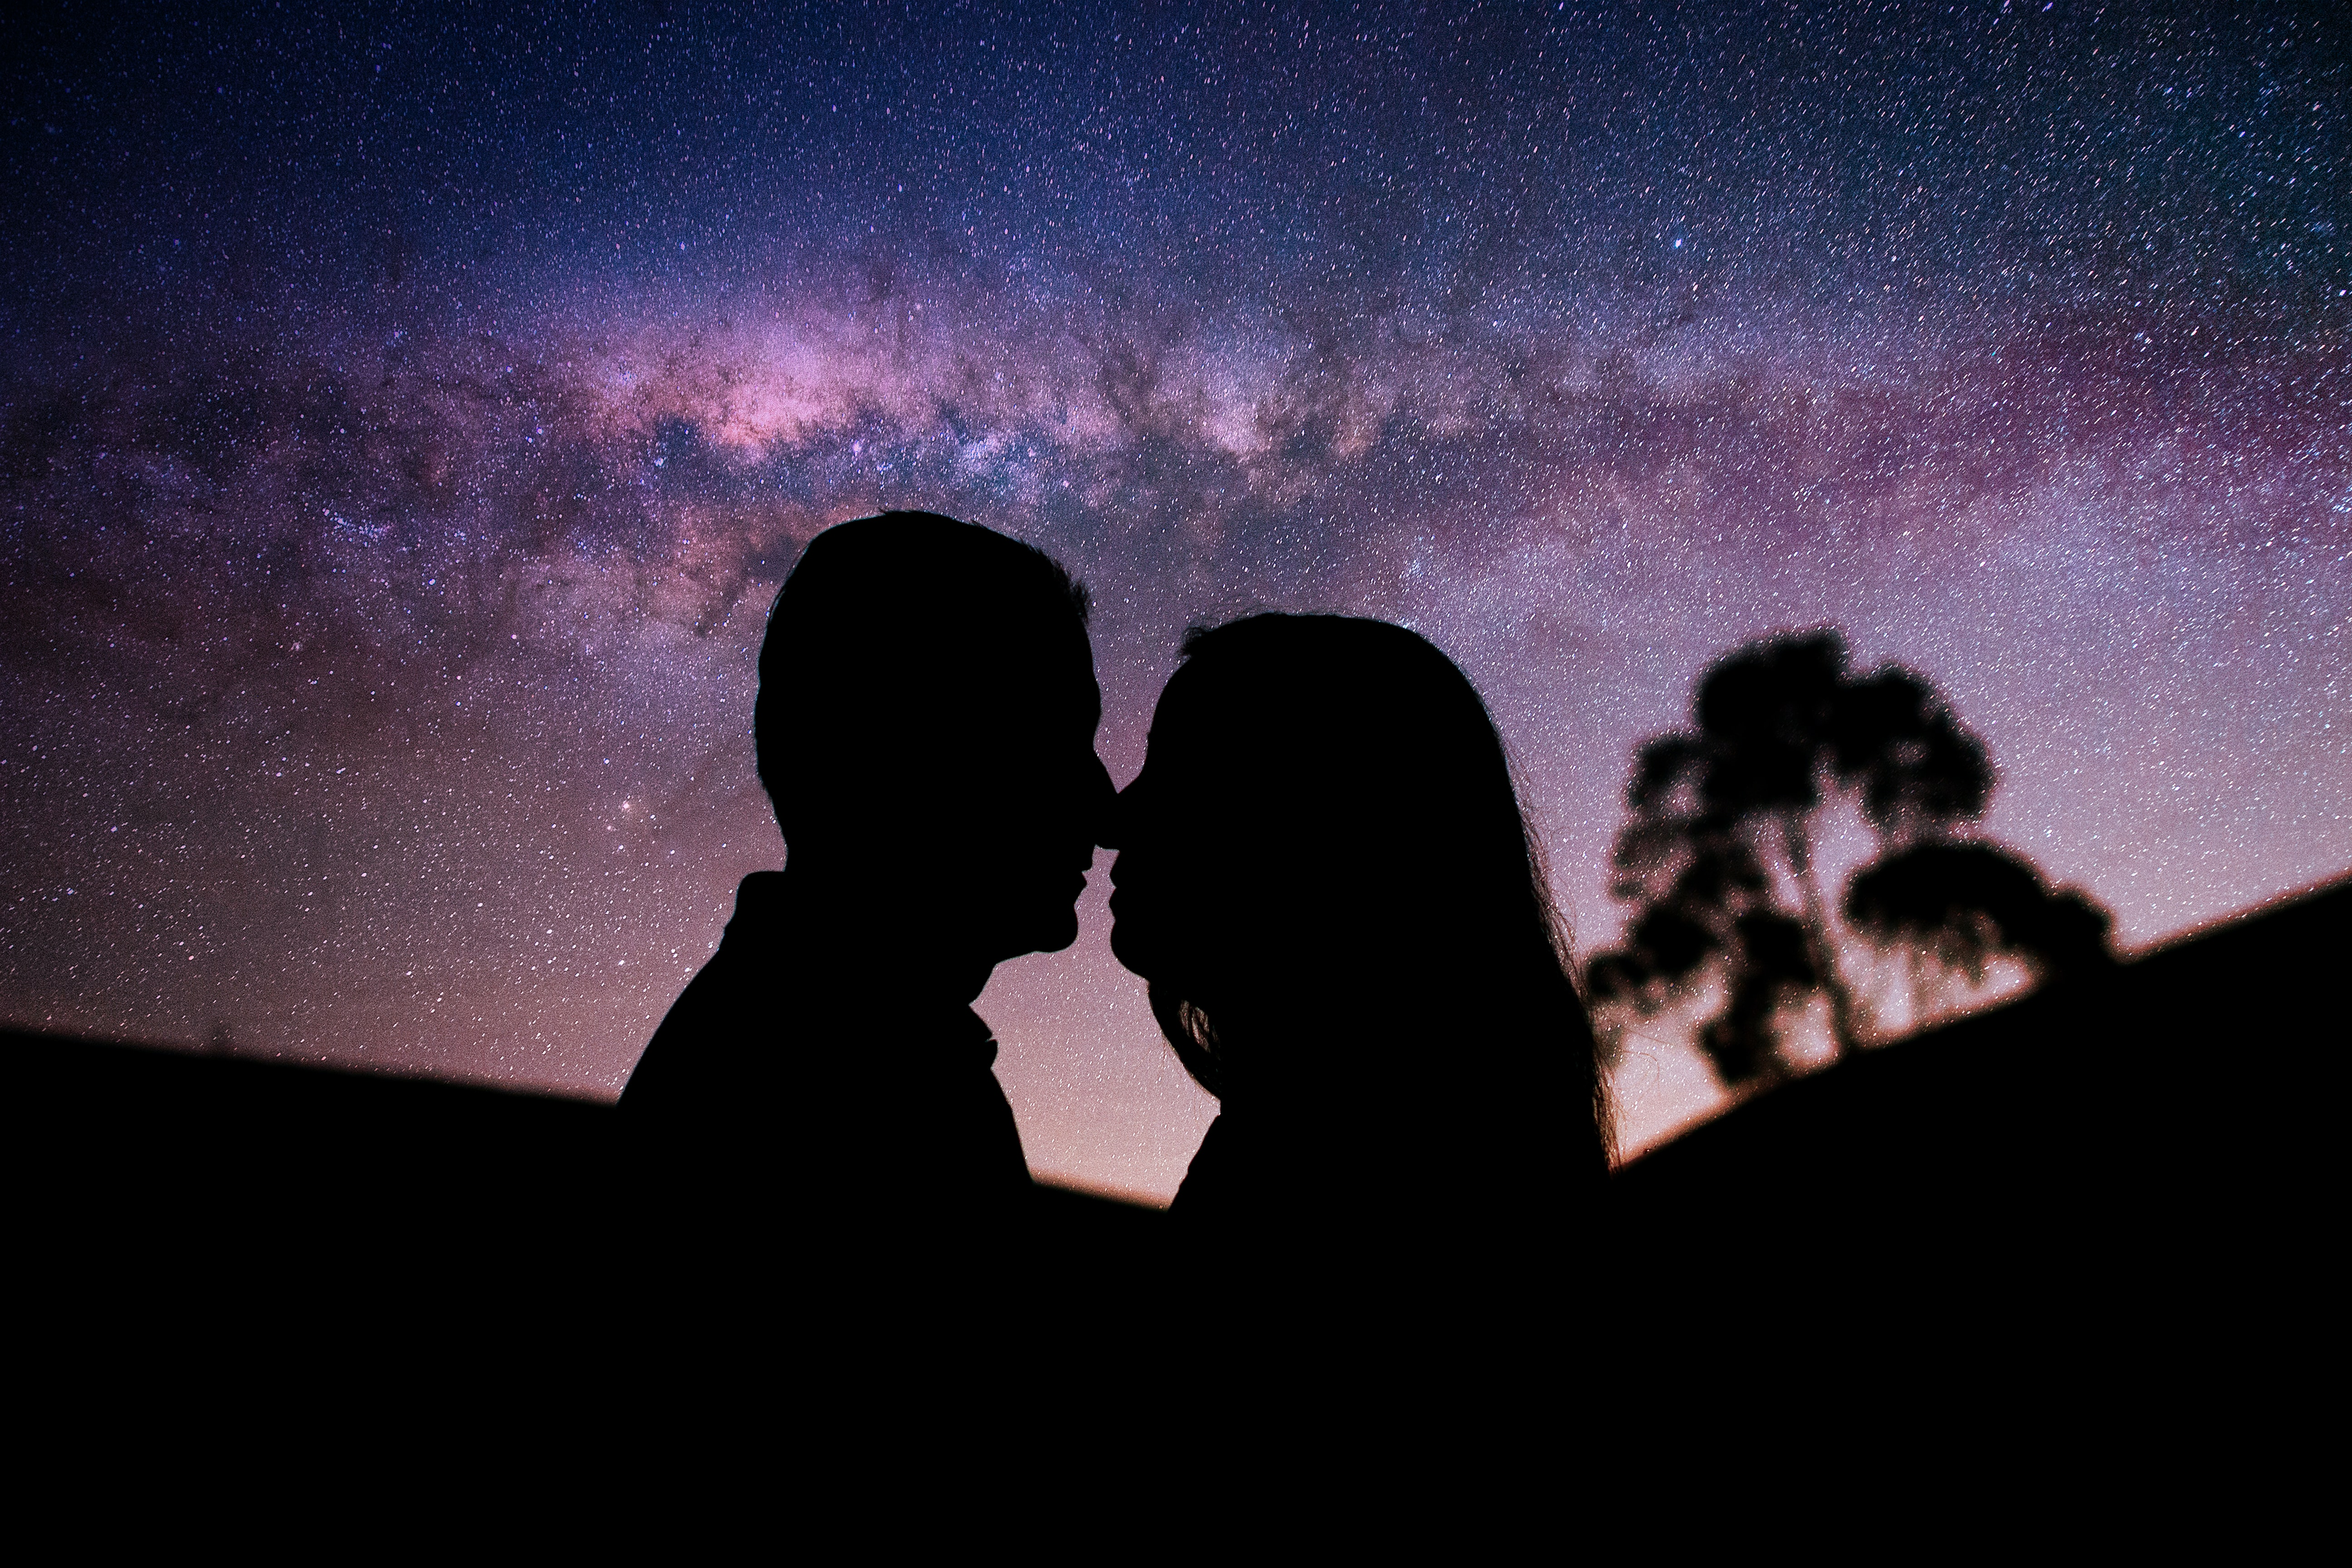 silhouette of man and woman facing each other with milky way background